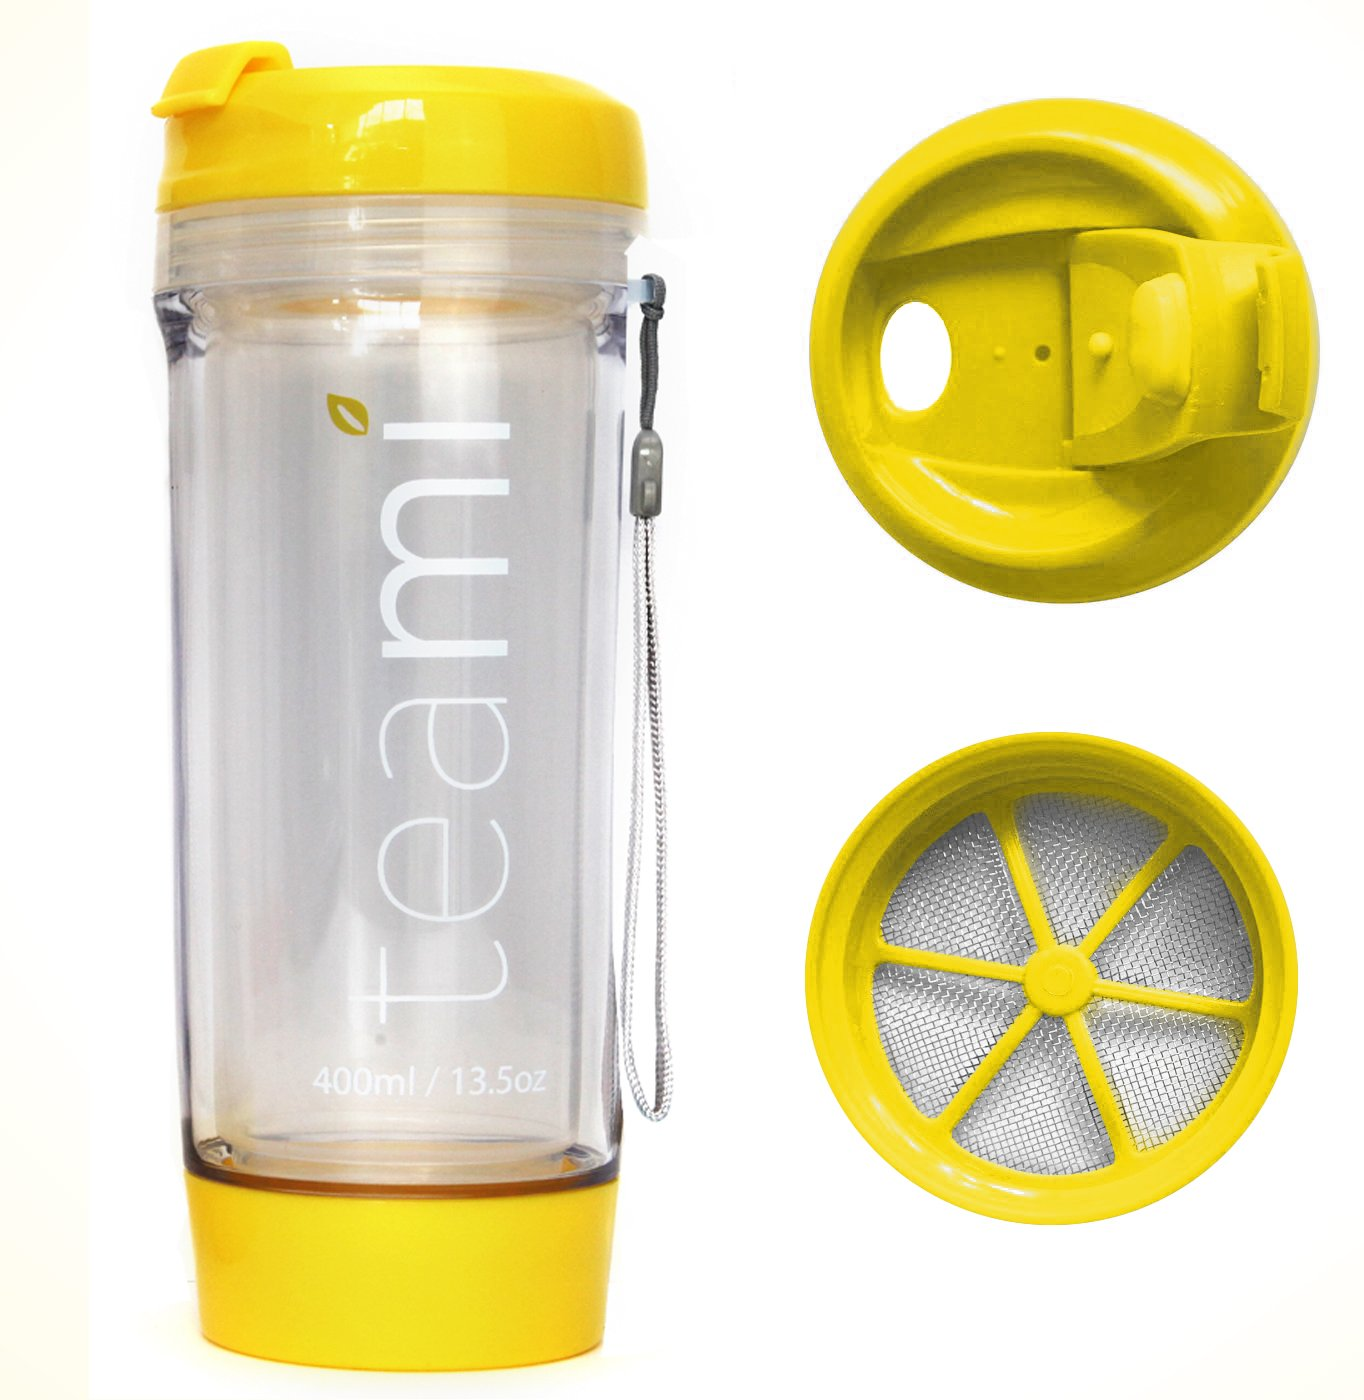 FRUIT INFUSER Water Bottle Tumbler with a Lid | 100% BPA FREE | Our Best Infusion Bottles for Infused Fruit, Smoothies, Tea, and Coffee | Double Walled Mug, Hot & Cold (20 Ounces, Yellow)